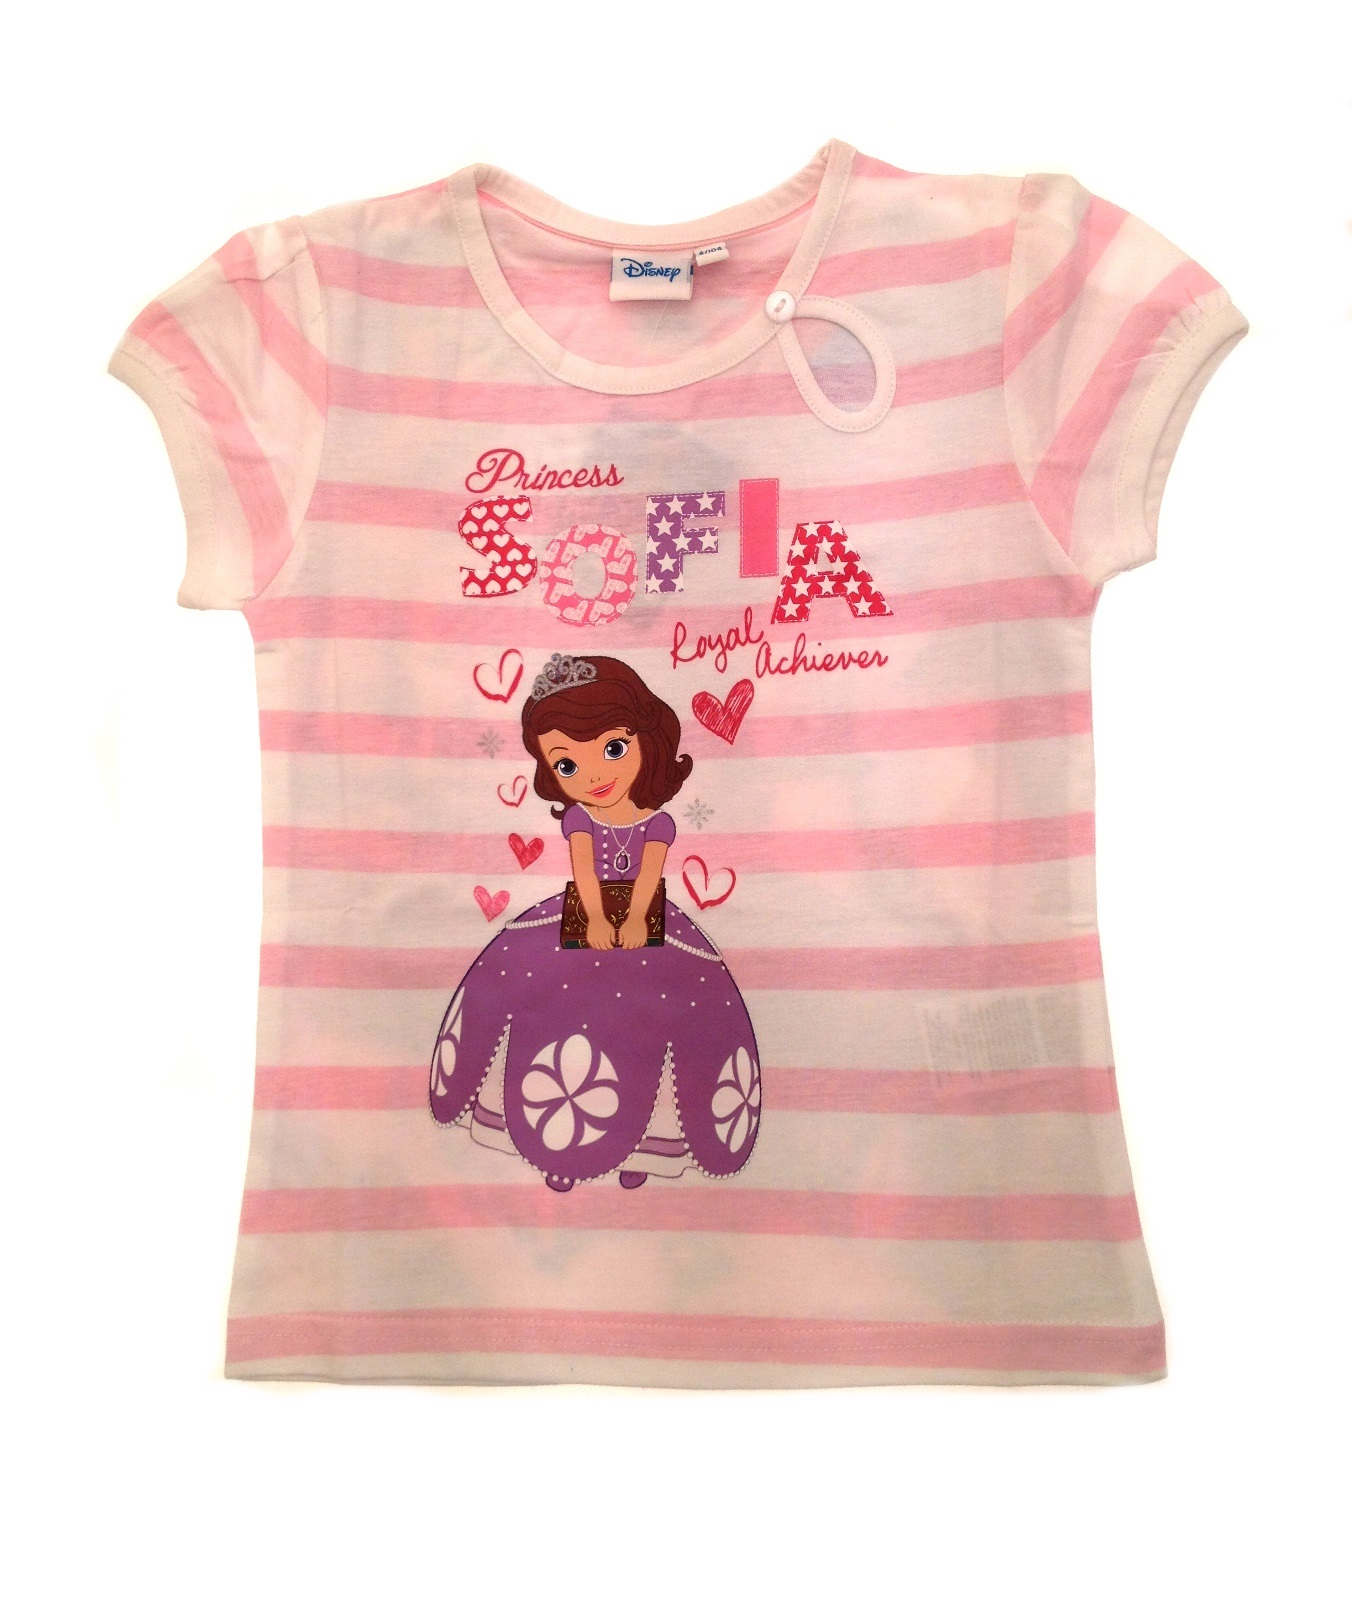 Girls disney princess sofia the first summer tops t shirts for Girls shirts size 8